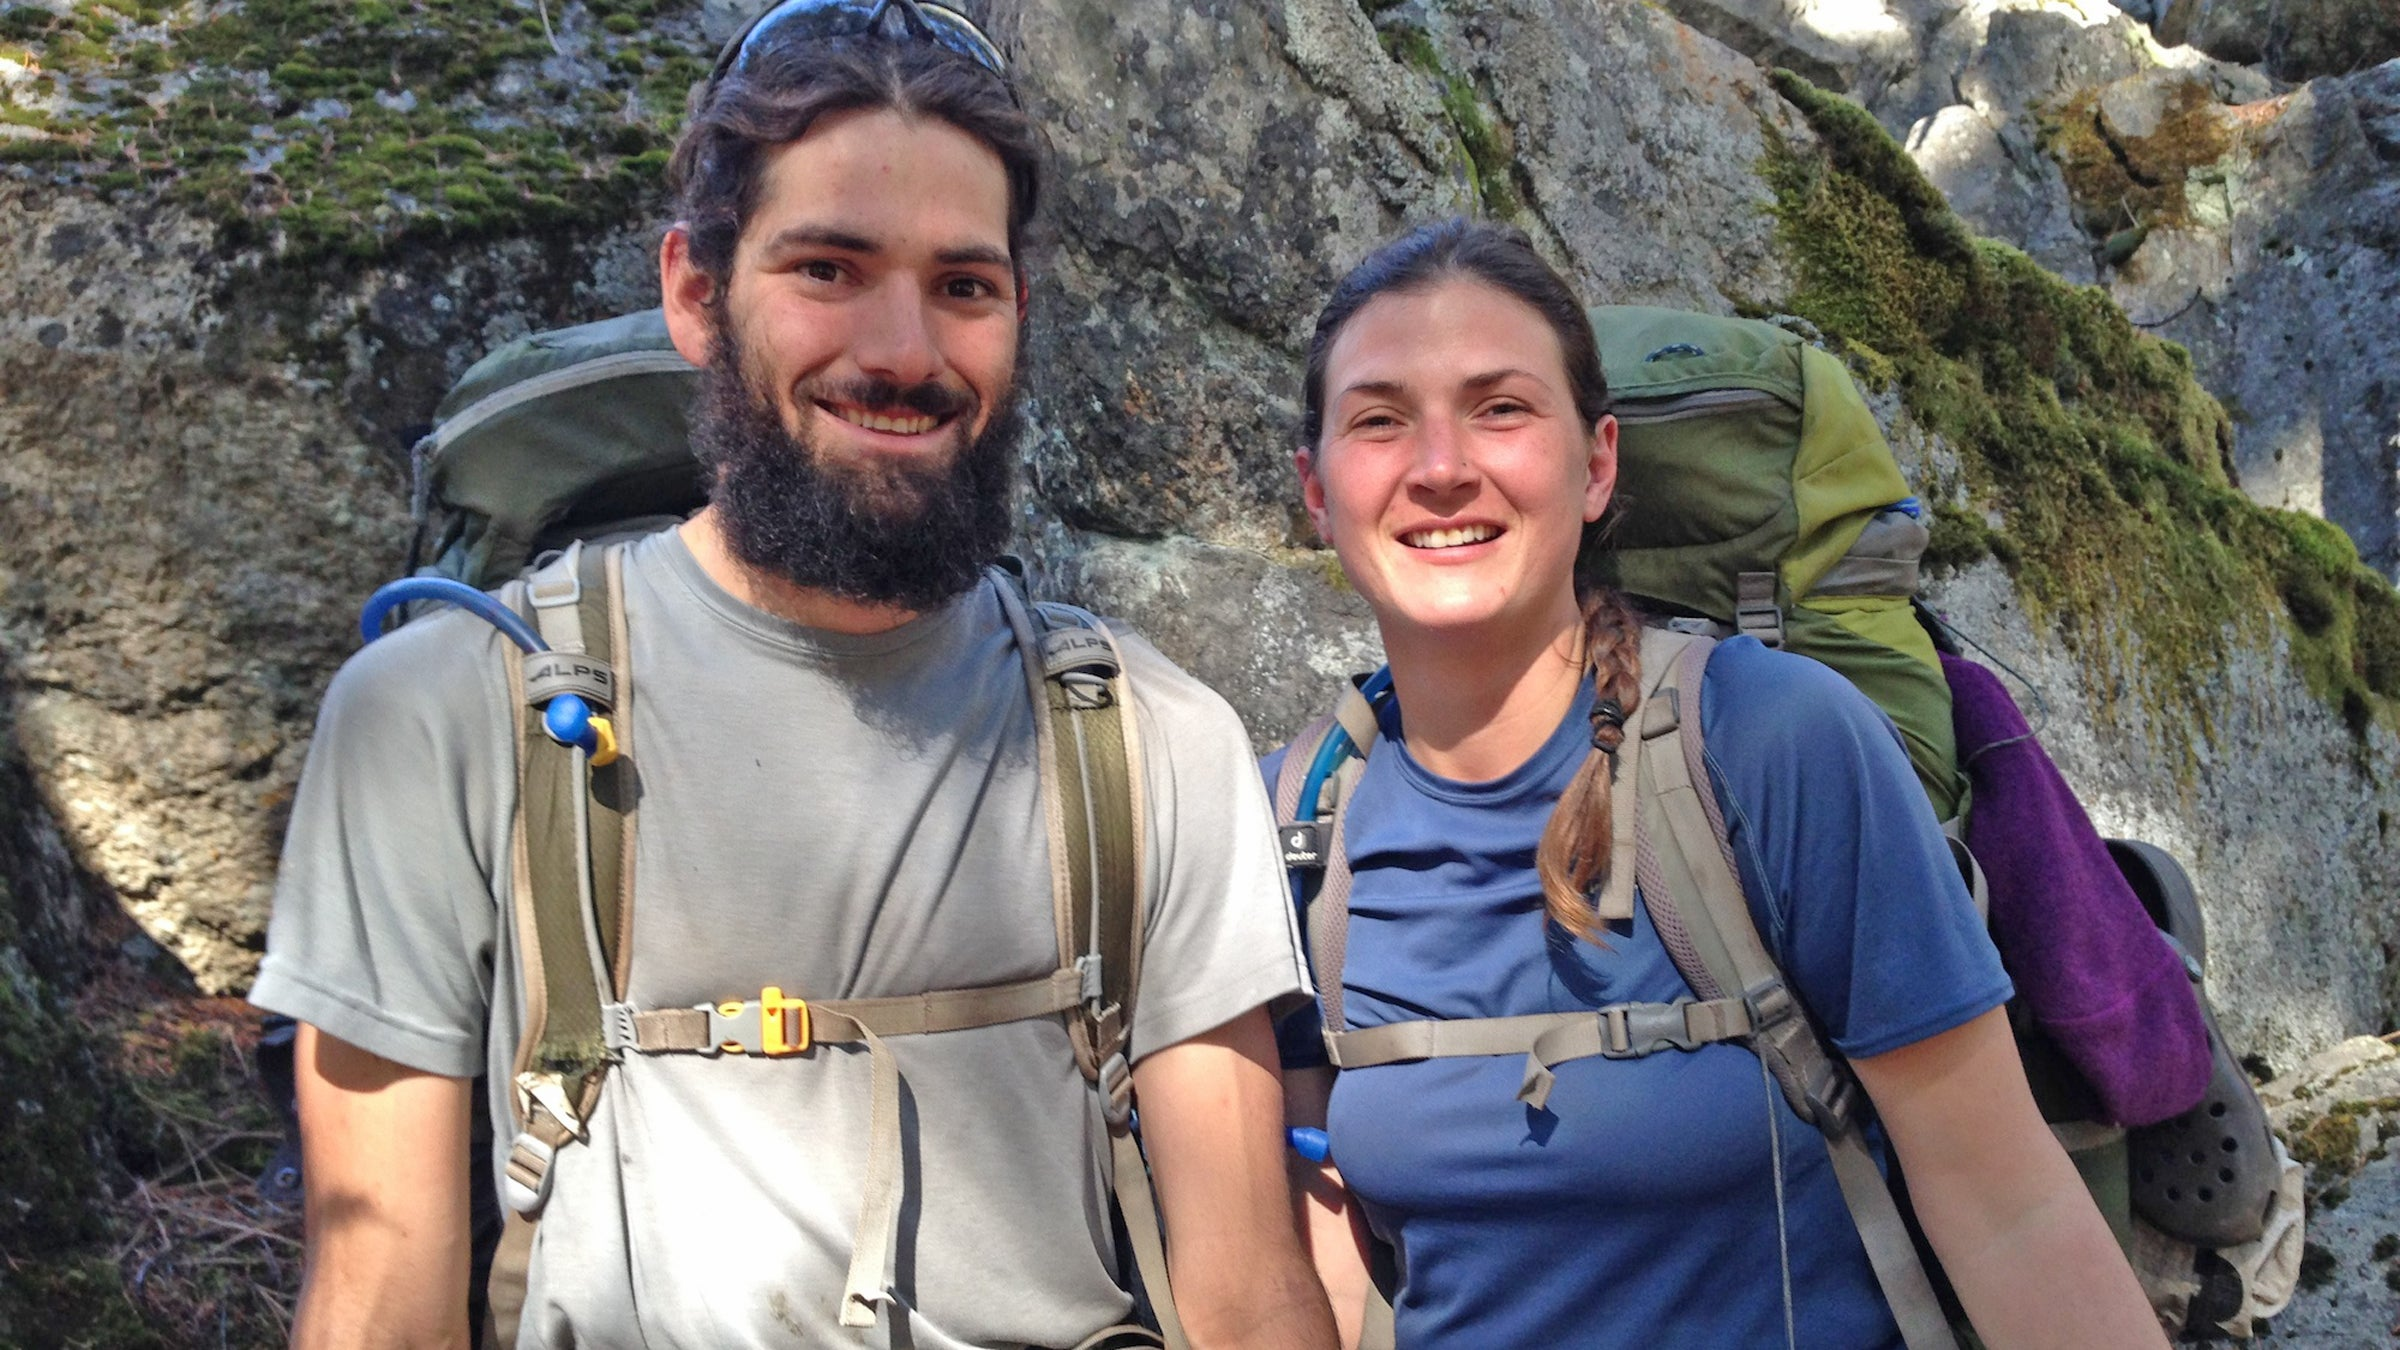 """Rico Colomb (left) and Mandy Torres, 26 and 32 Trail Names: Cup and Ladybug  Windsor, California  Ladybug: """"Hiking over the passes in the Sierras was a lot scarier than I thought it was going to be. Before the trip, I thought that if I got stung by a bee, I'd die, but I got stung twice by a bee and I am still here!""""  Cup: """"I learned I'm capable of going through a lot more misery than I thought I was. I can hike a lot farther in a day than I thought. Biggest day was 29 miles. At the start I did a 14-mile day and thought I was going to die."""""""